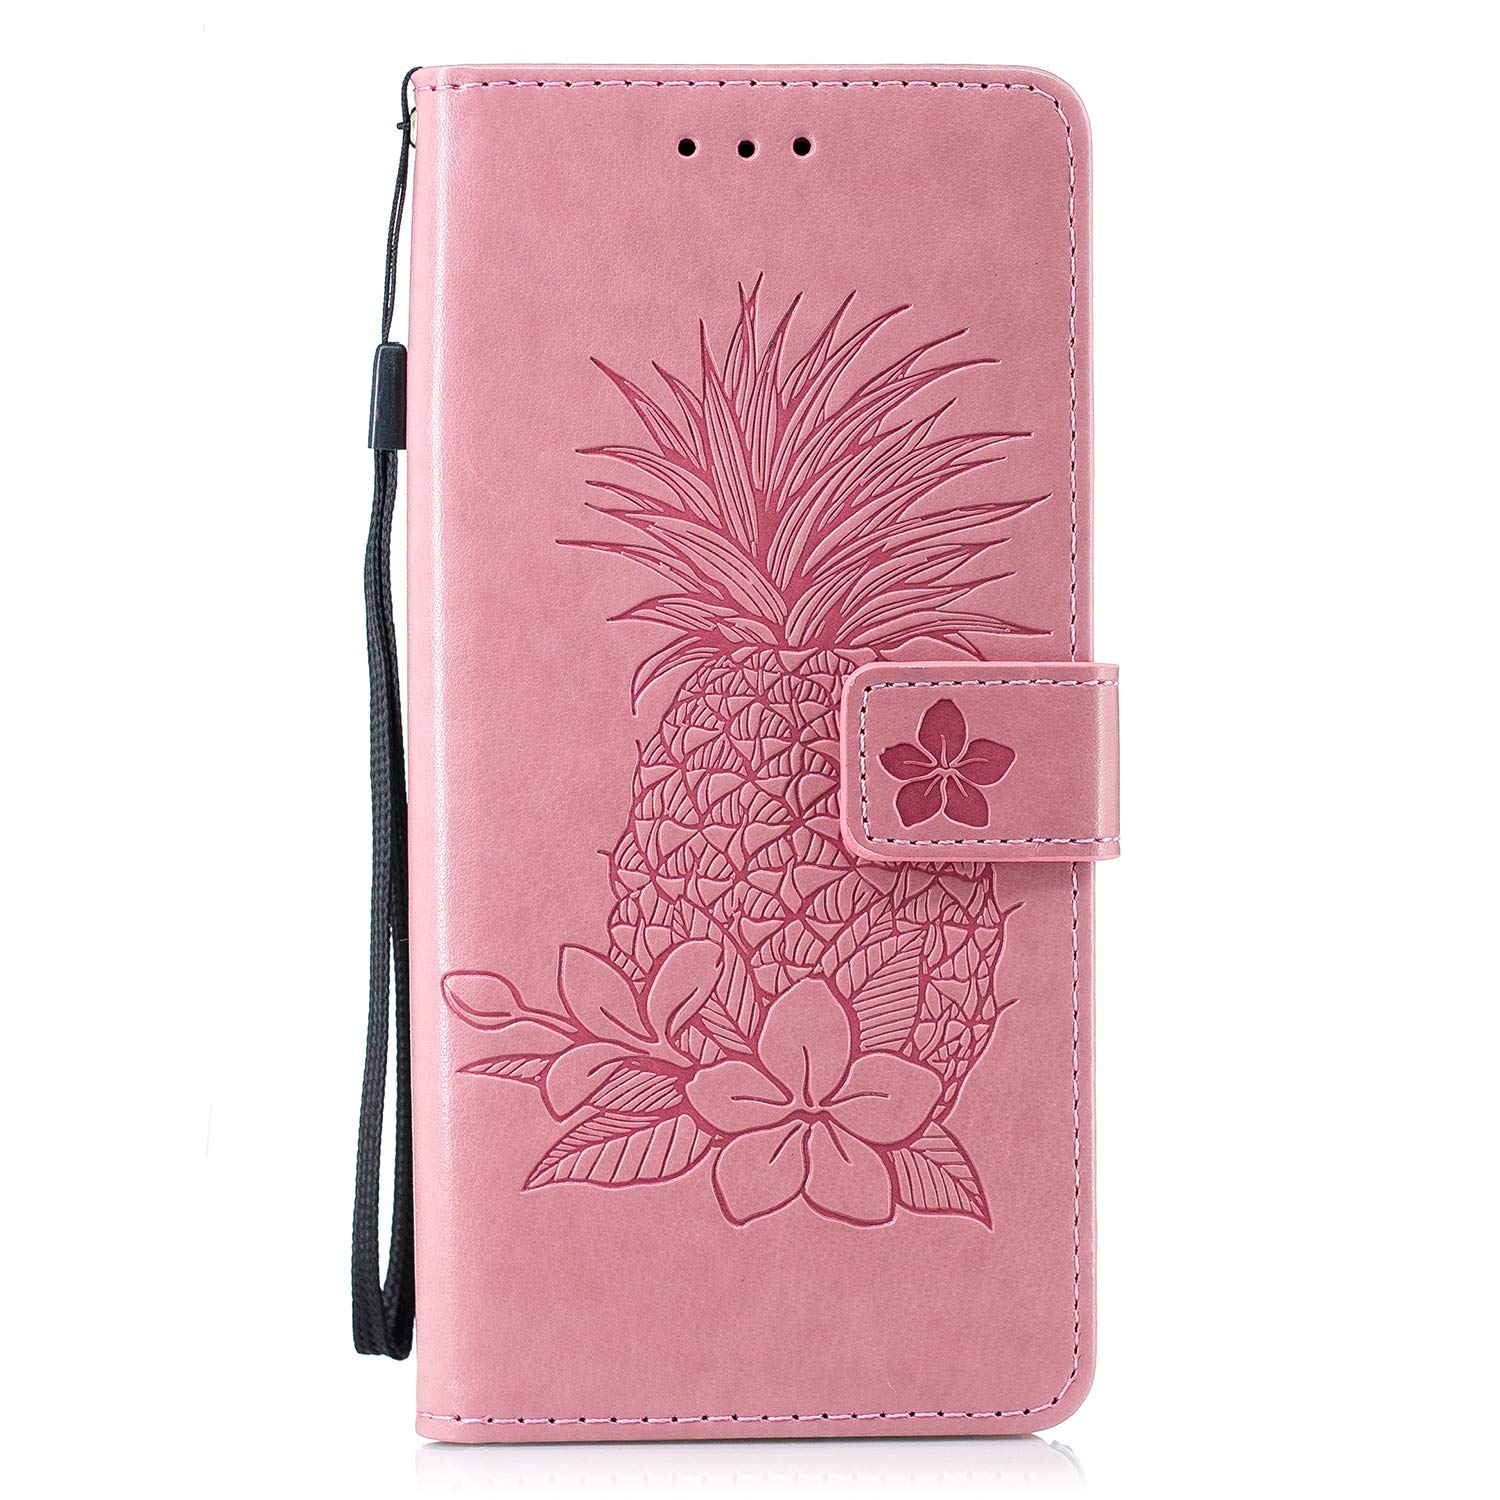 Samsung Galaxy Note 9 Case, AIIYG DS 3D Pattern [Kickstand Feature] Flip Folio Leather Wallet Case with ID and Credit Card Pockets for Galaxy Note 9 (Pink Pineapple) by AIIYG DS (Image #1)